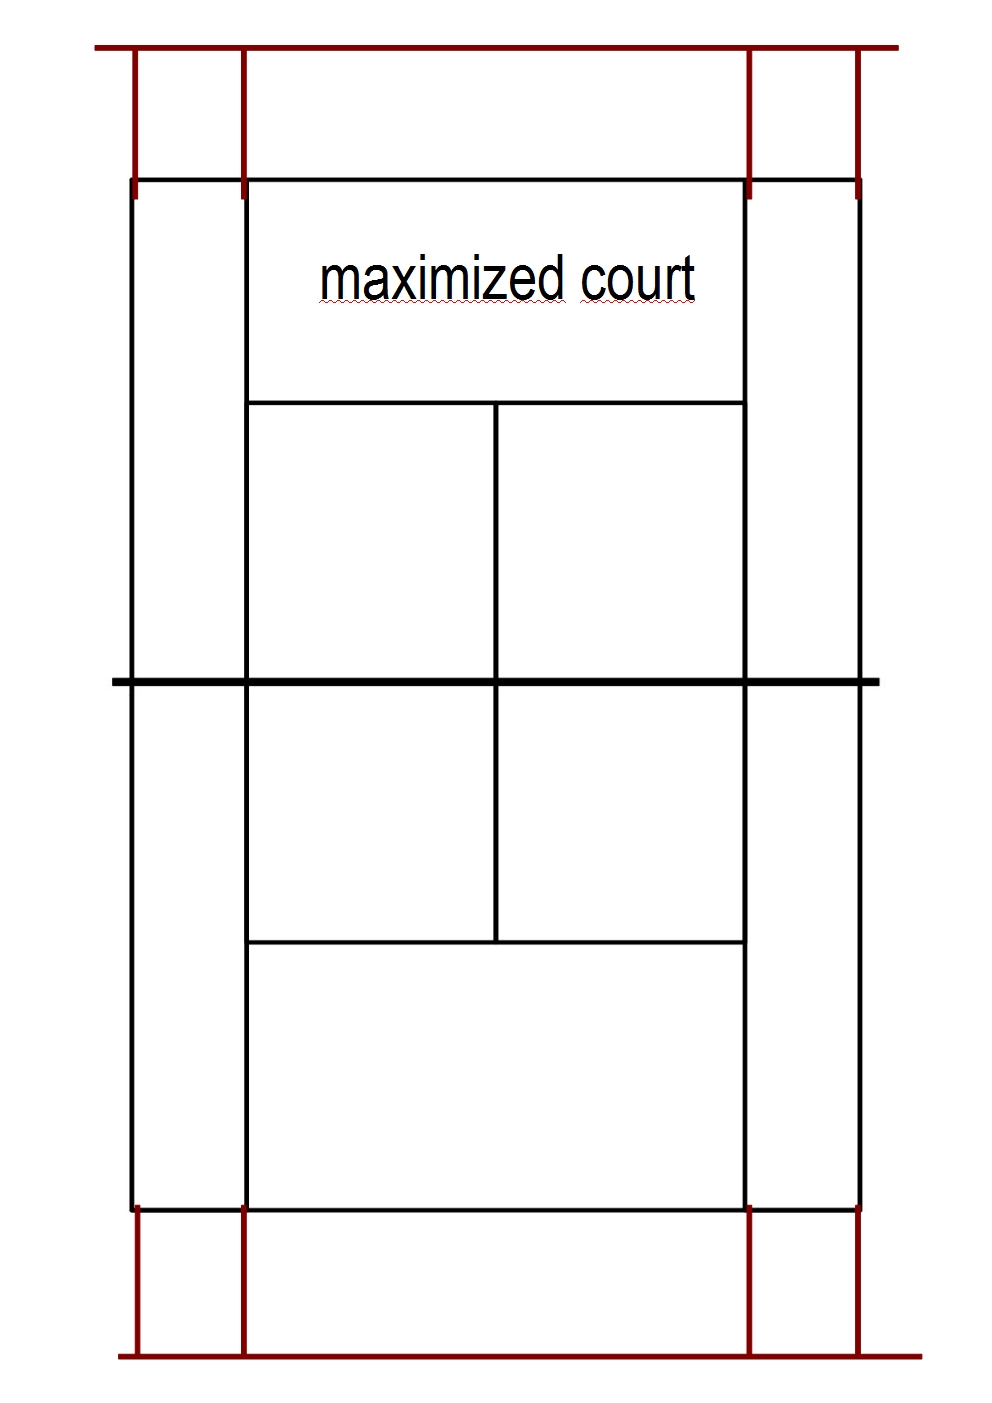 maximized_court